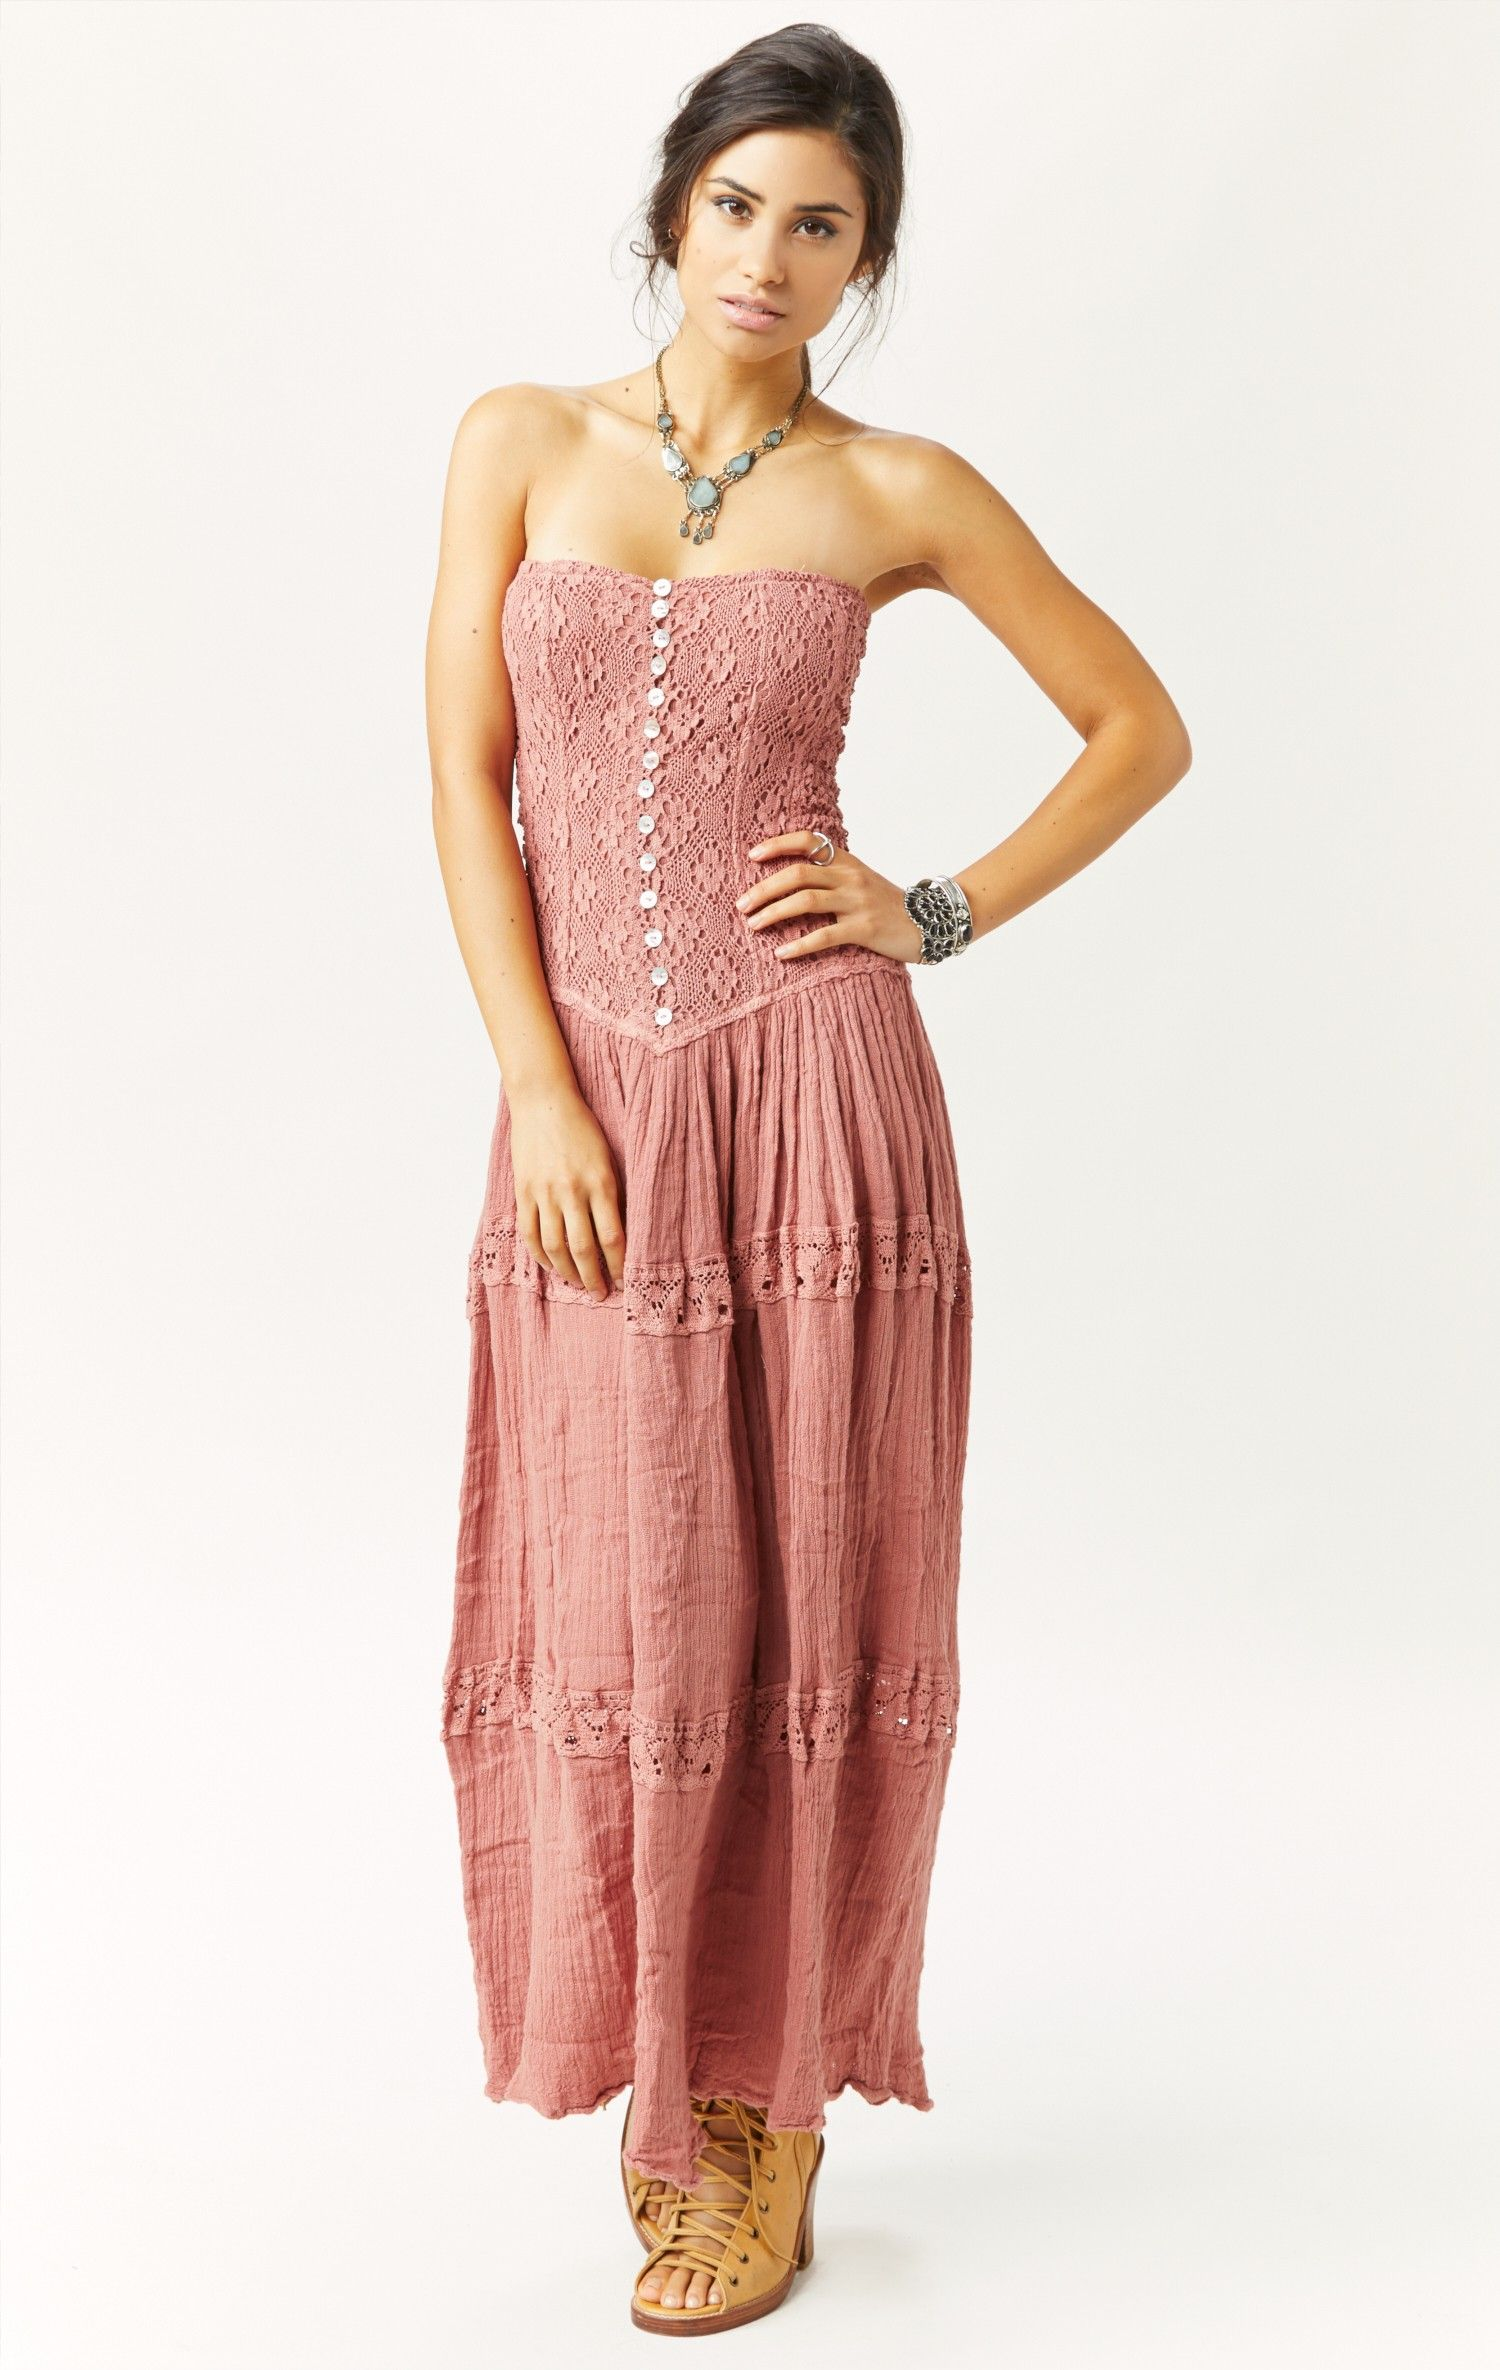 cherokee rose maxi dress by JEN'S PIRATE BOOTY #planetblue